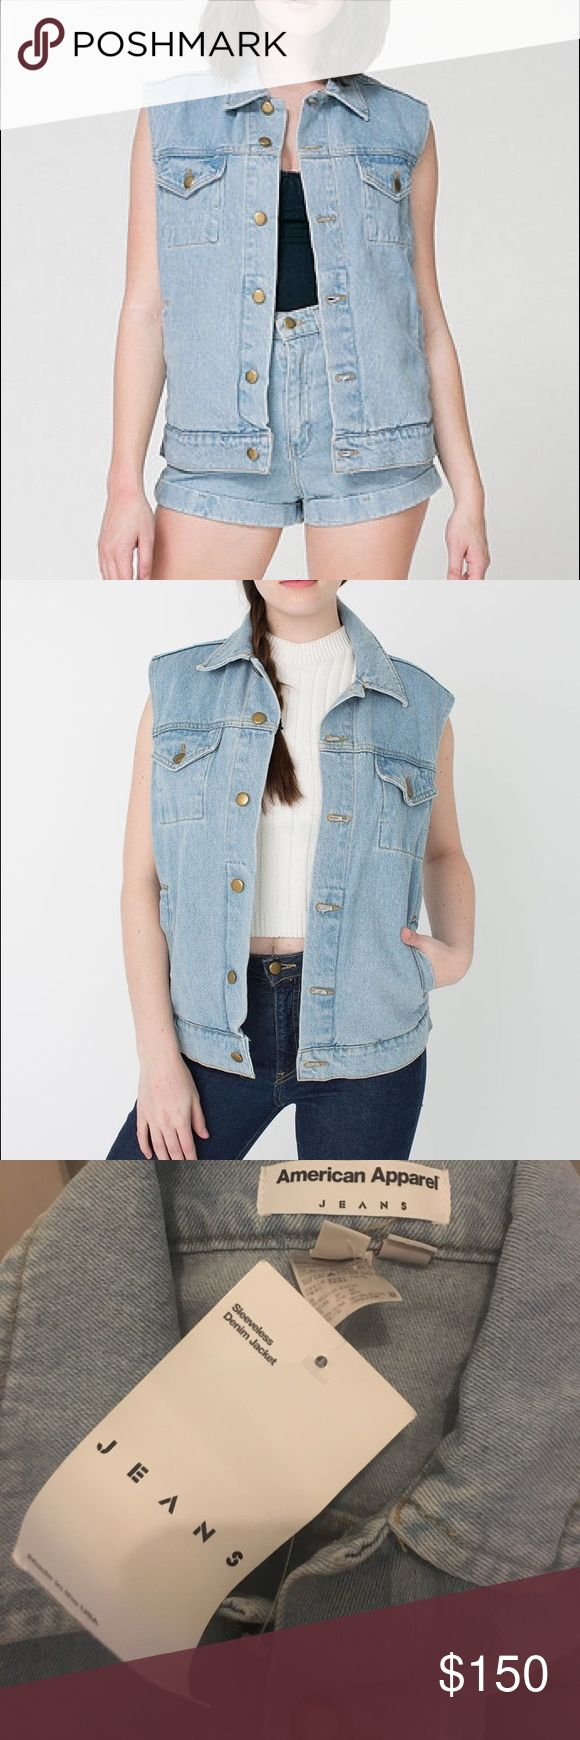 American Apparel Sleeveless Denim Jacket Unisex XS New with tags! Unisex / oversized fit. Stonewash. Sleeveless Denim jacket with button closures. Since this is a unisex small - this will fit a variety of sizes depending on how you want this to fit. American Apparel Jackets & Coats Vests